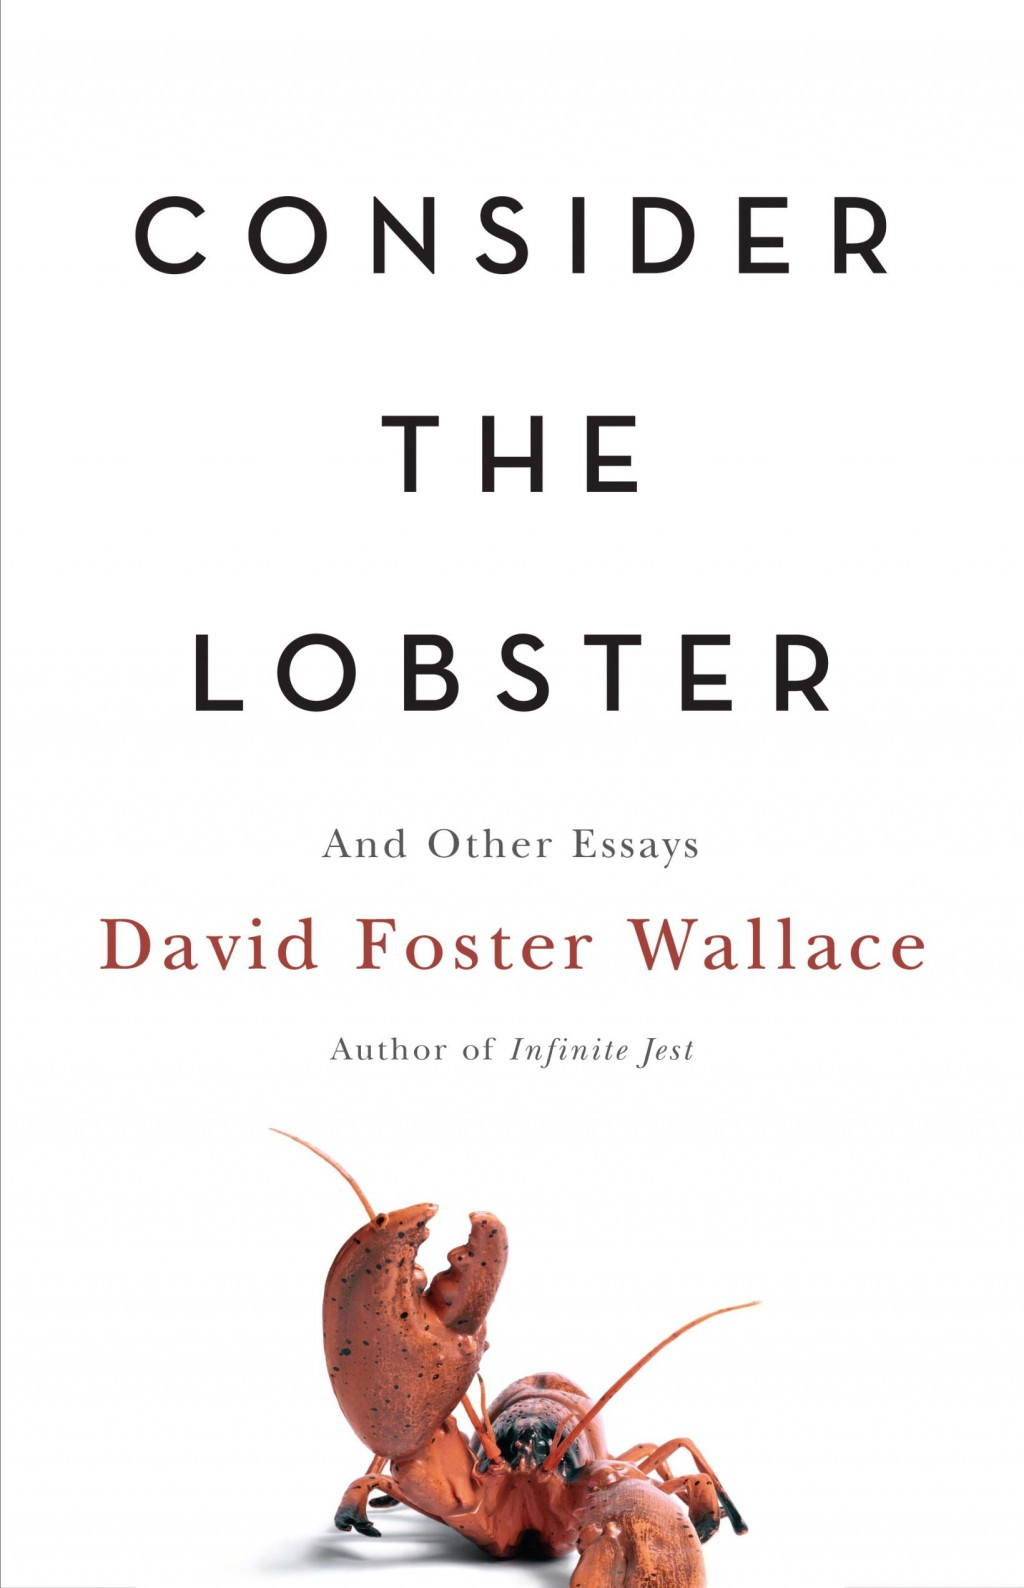 008 David Foster Wallace Essays Essay Example Formidable Amazon And The Long Thing New On Novels Cruise Ship Large